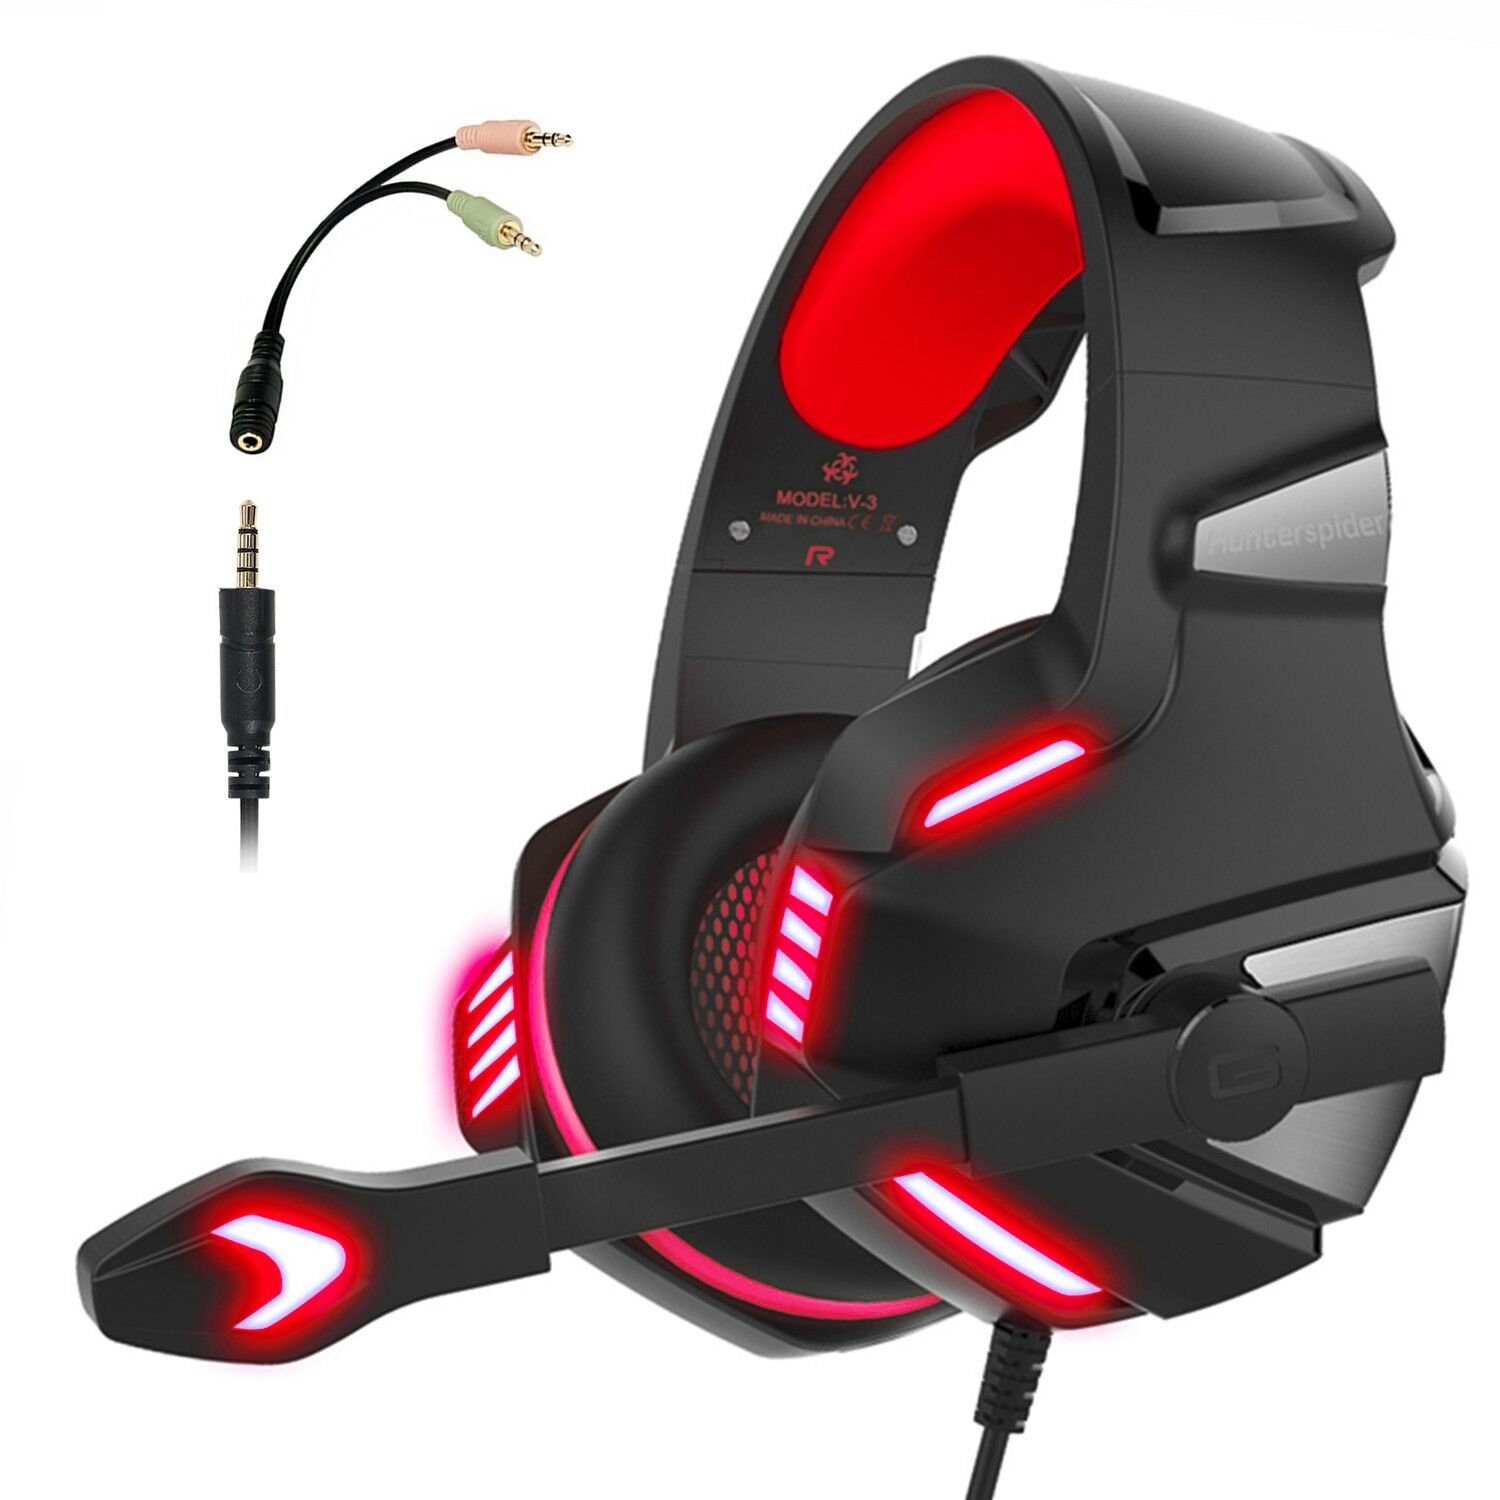 Gaming Headset for PS4 Xbox One, Micolindun Over Ear Gaming Headphones with Mic Stereo Surround Noise Reduction LED Lights Volume Control for Laptop, PC, Tablet, Smartphones Hunterspider V3red